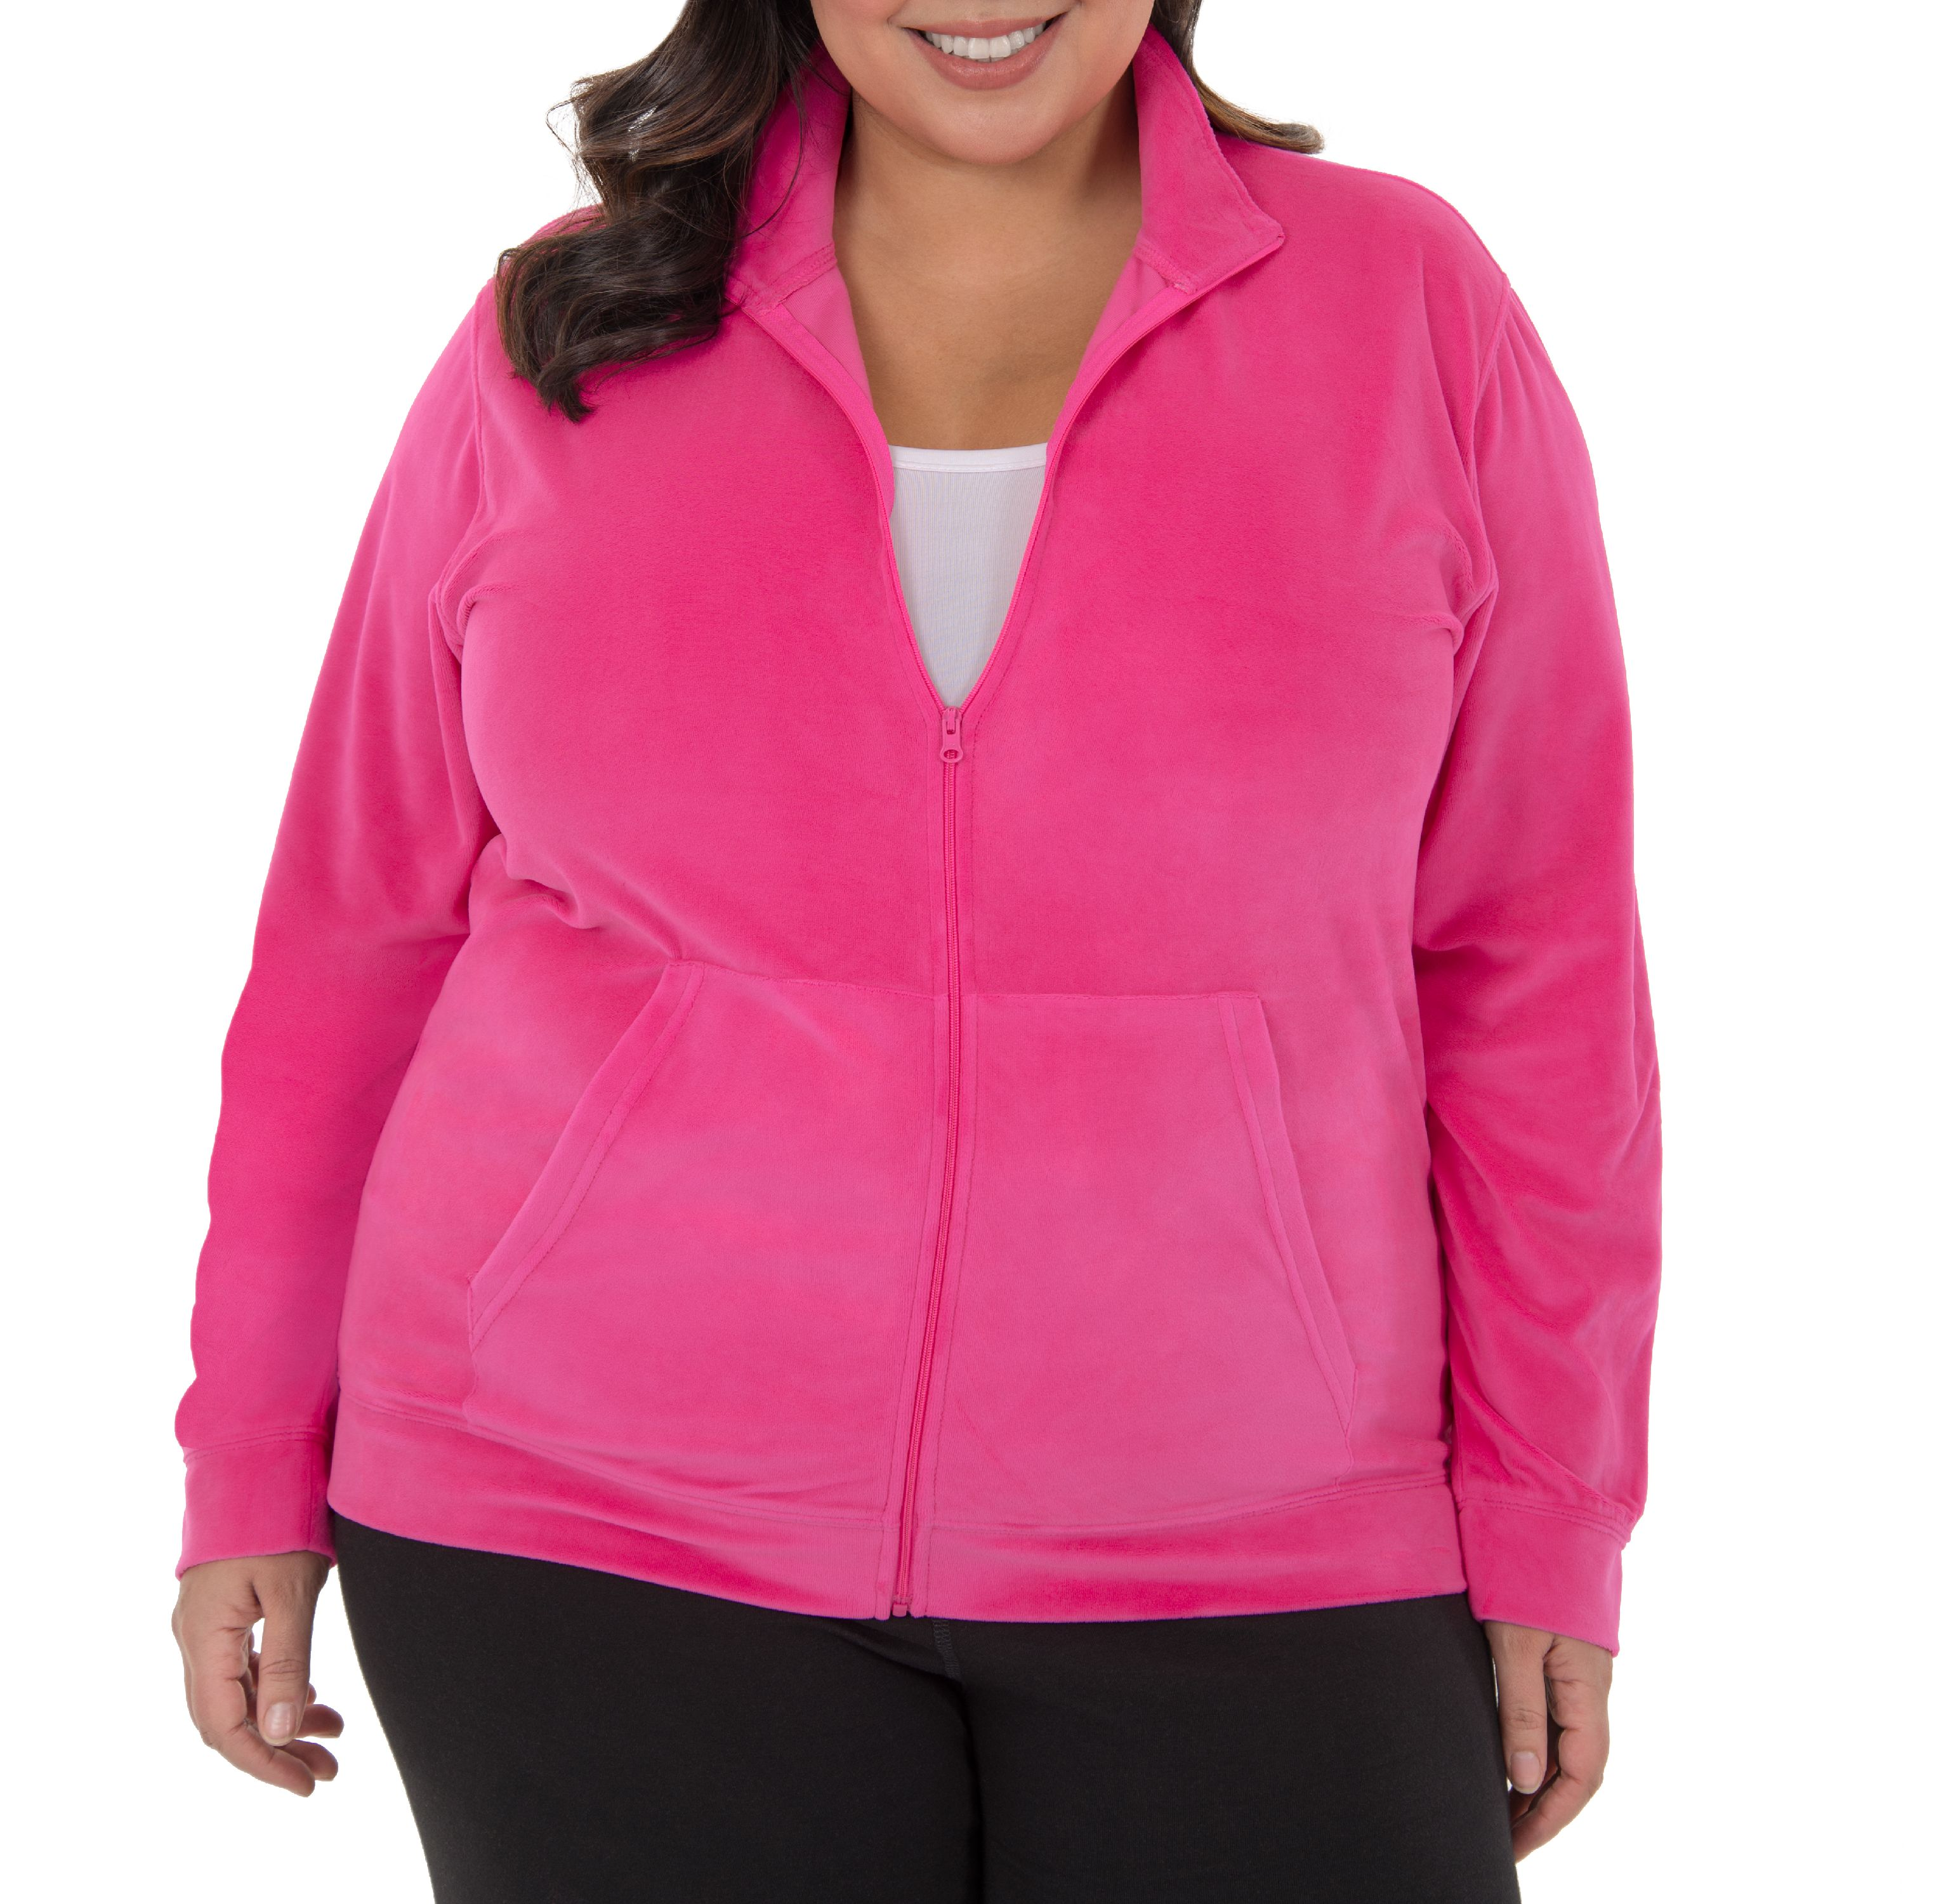 Danskin Now Women's Plus Velour Full Zip Jacket with Pockets